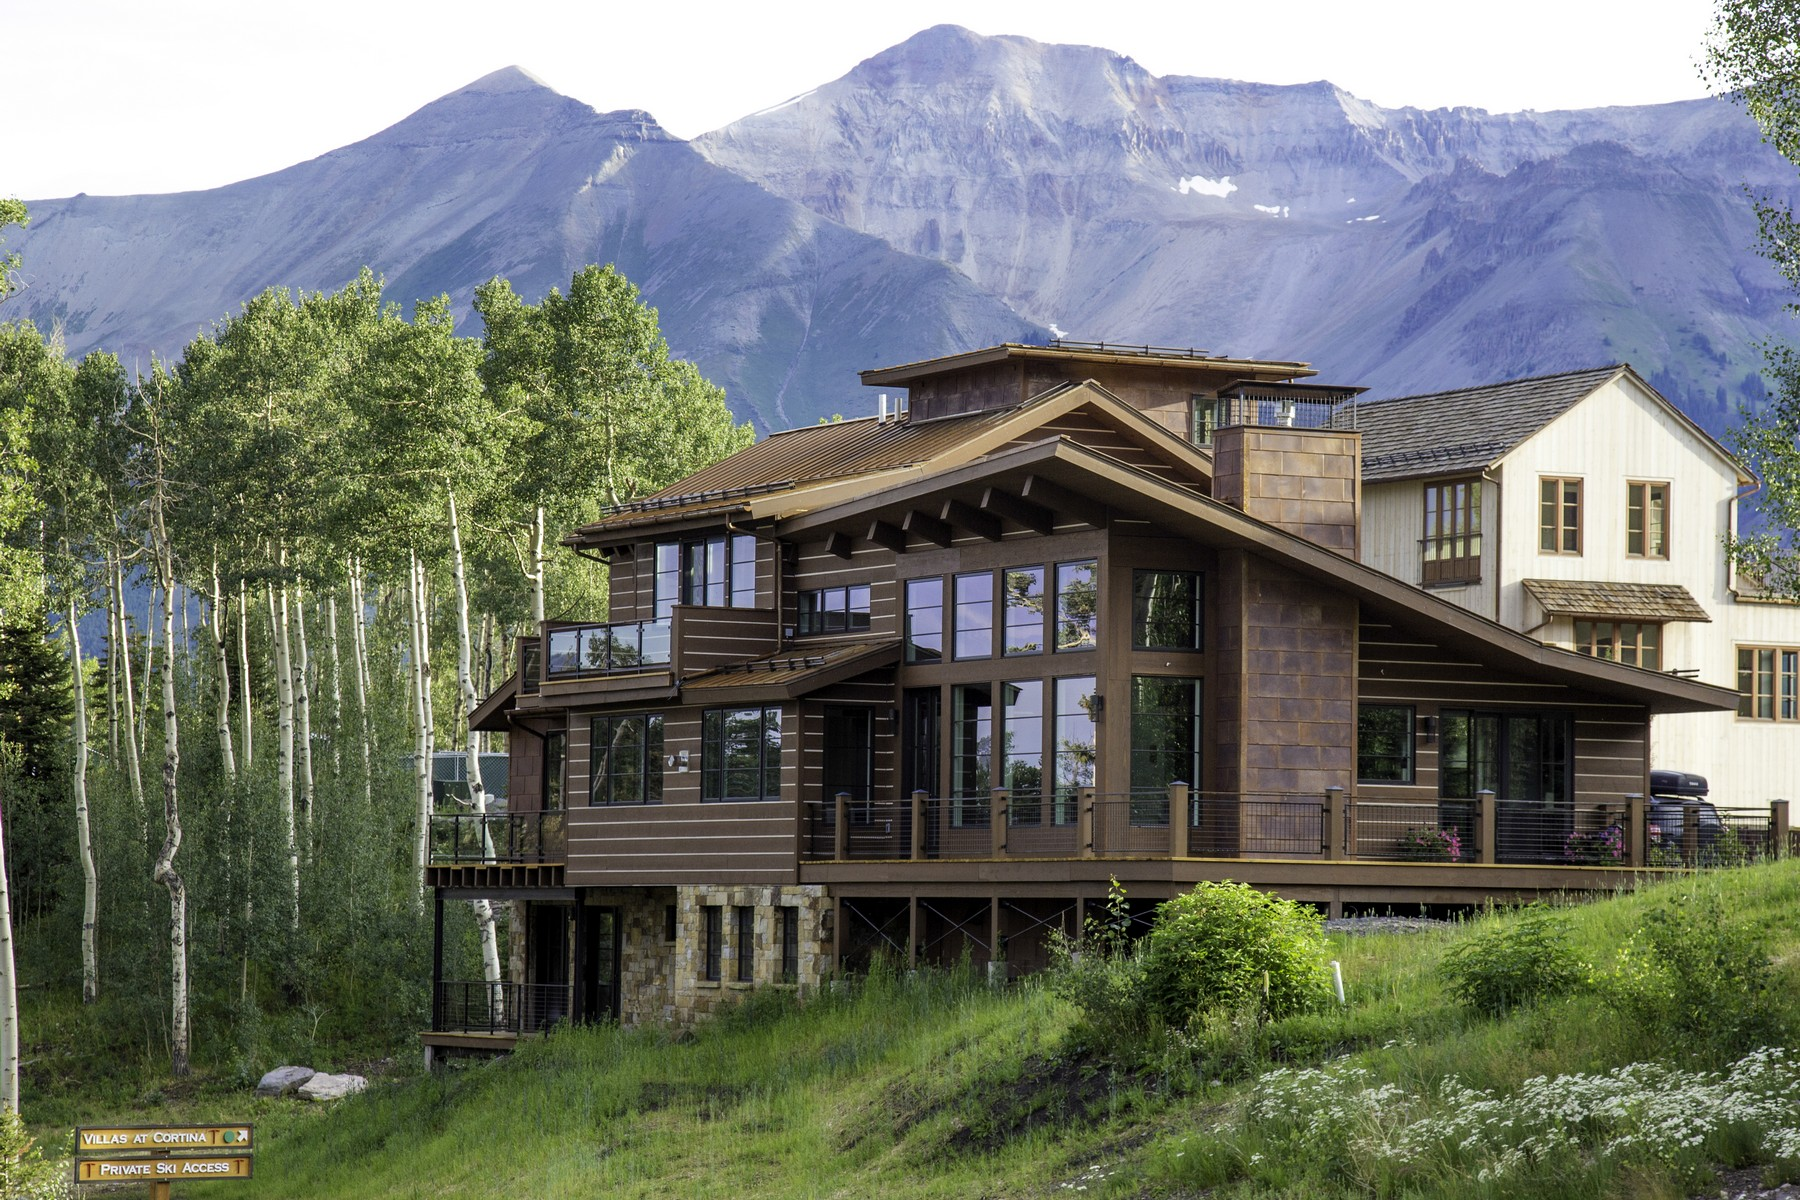 Single Family Home for Active at 240 Cortina Drive 240 Cortina Drive Mountain Village, Colorado 81435 United States